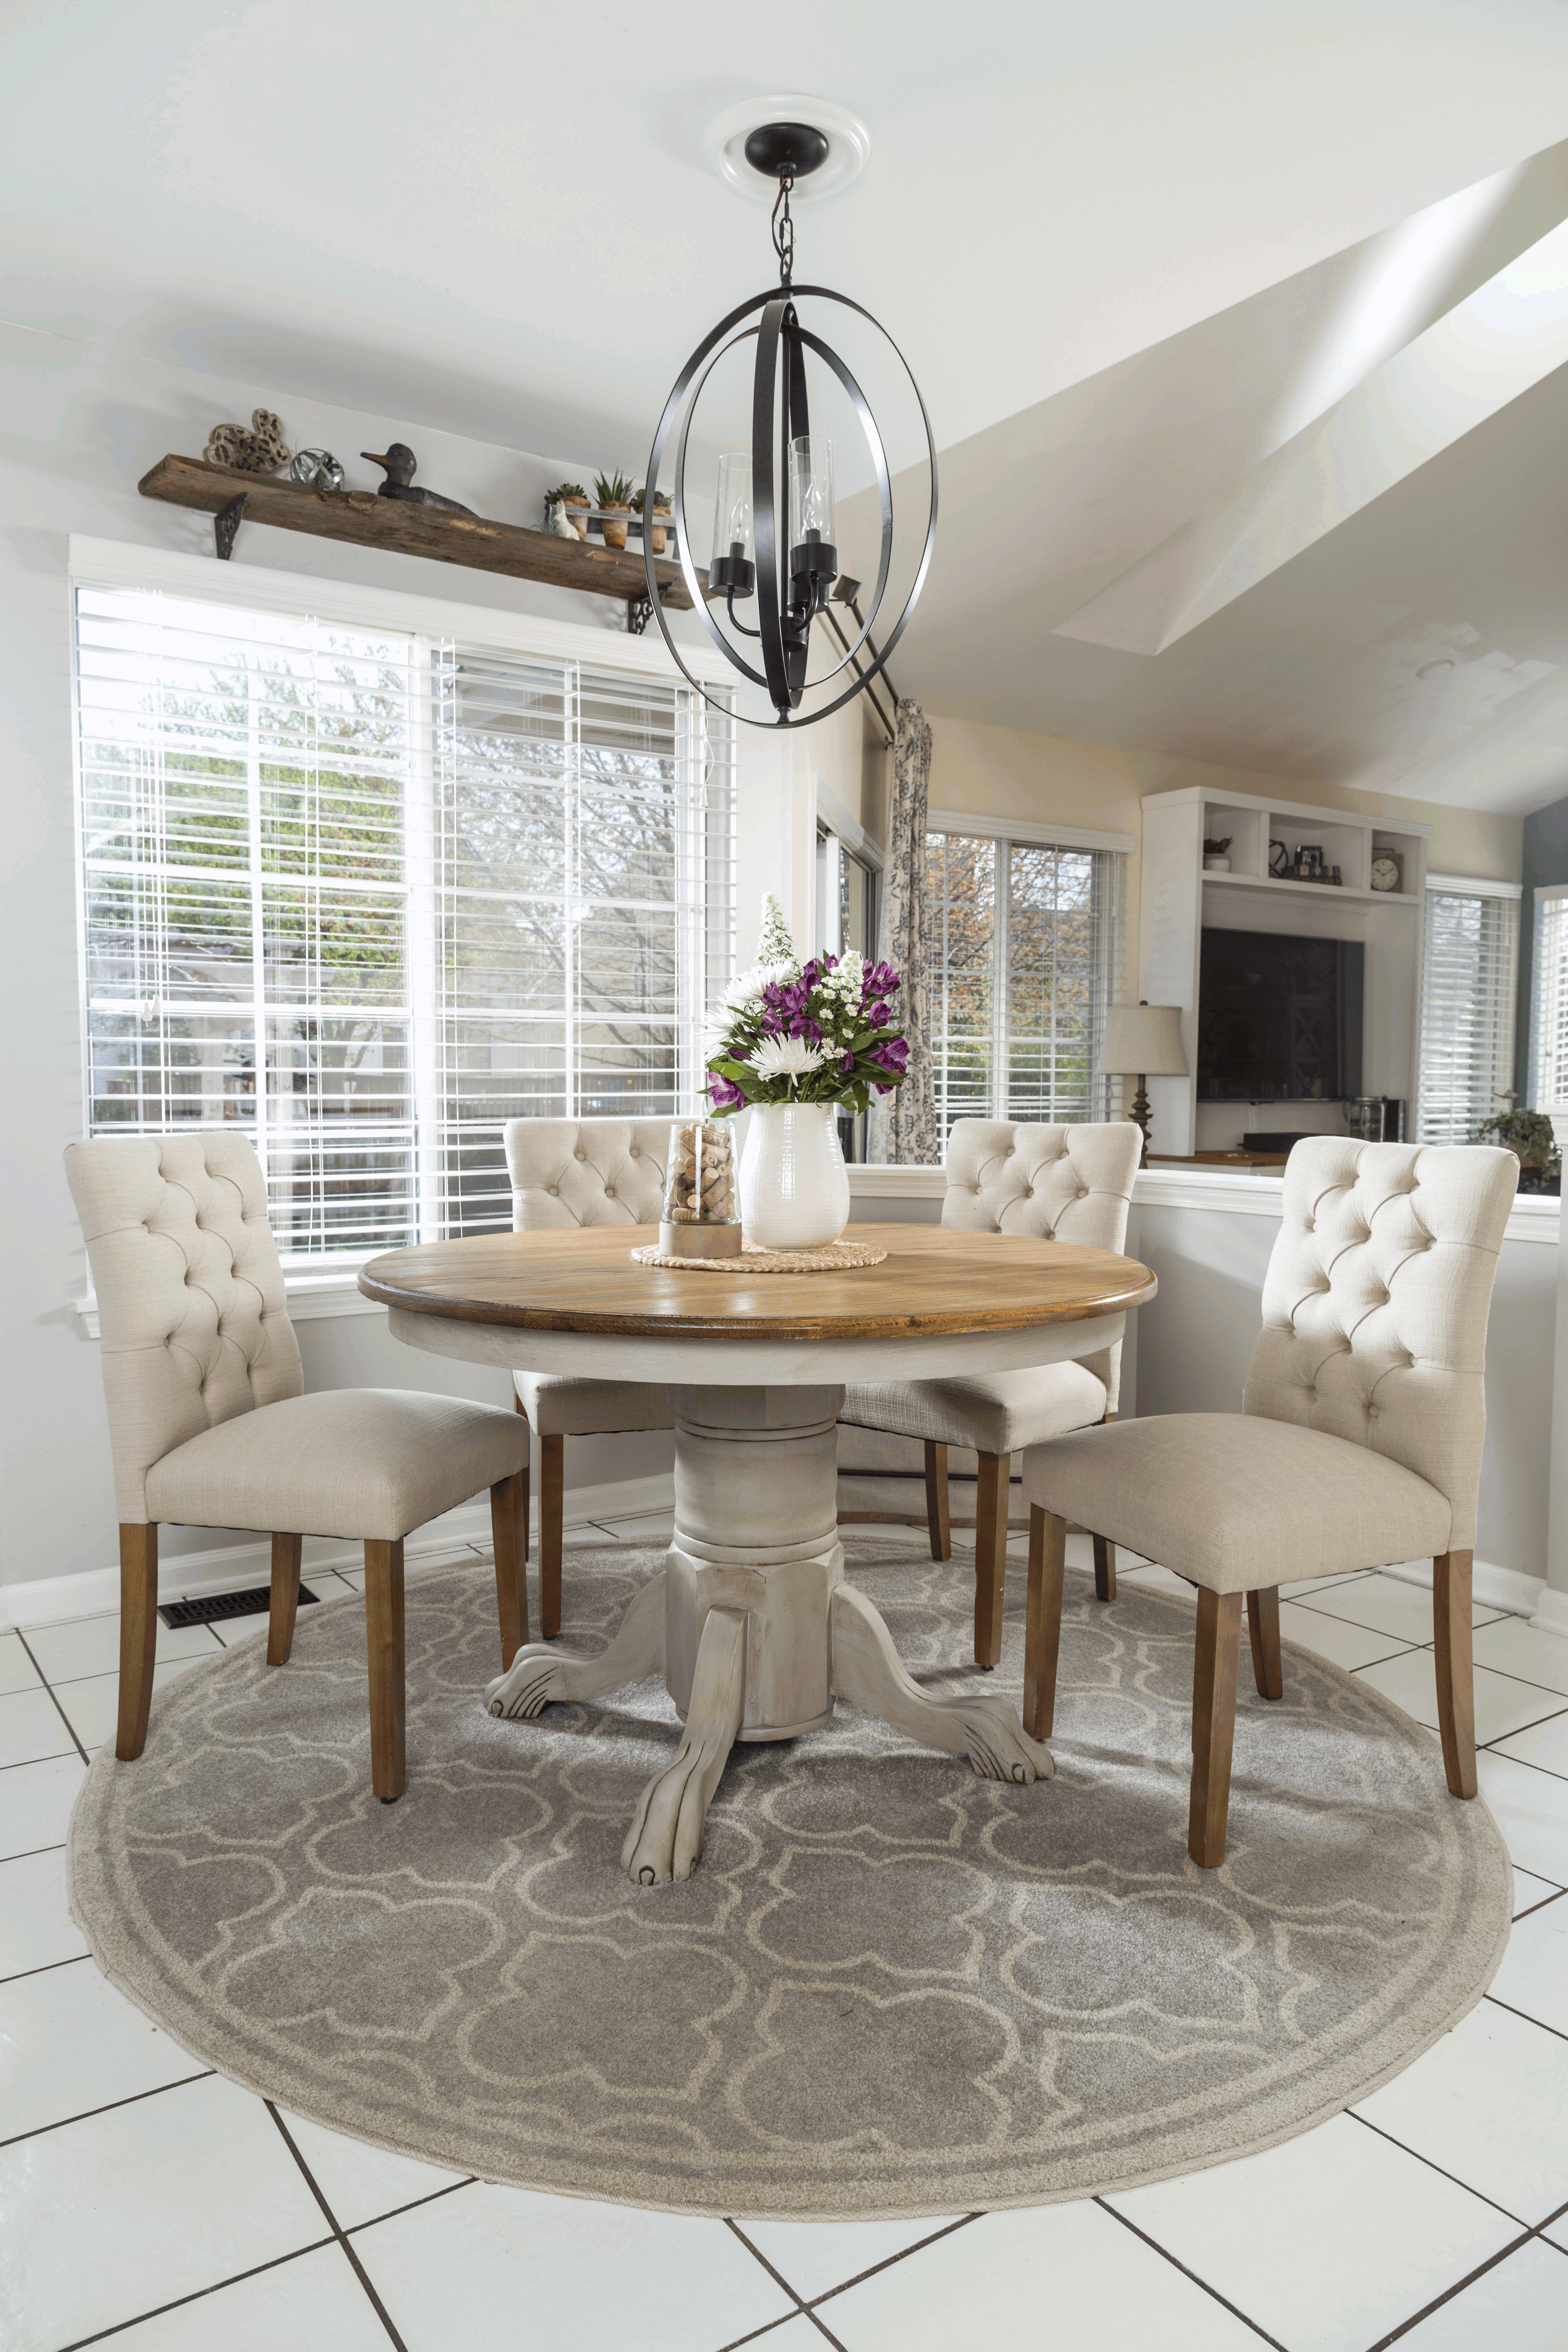 what I want for my kitchen a small round pedestal table with four